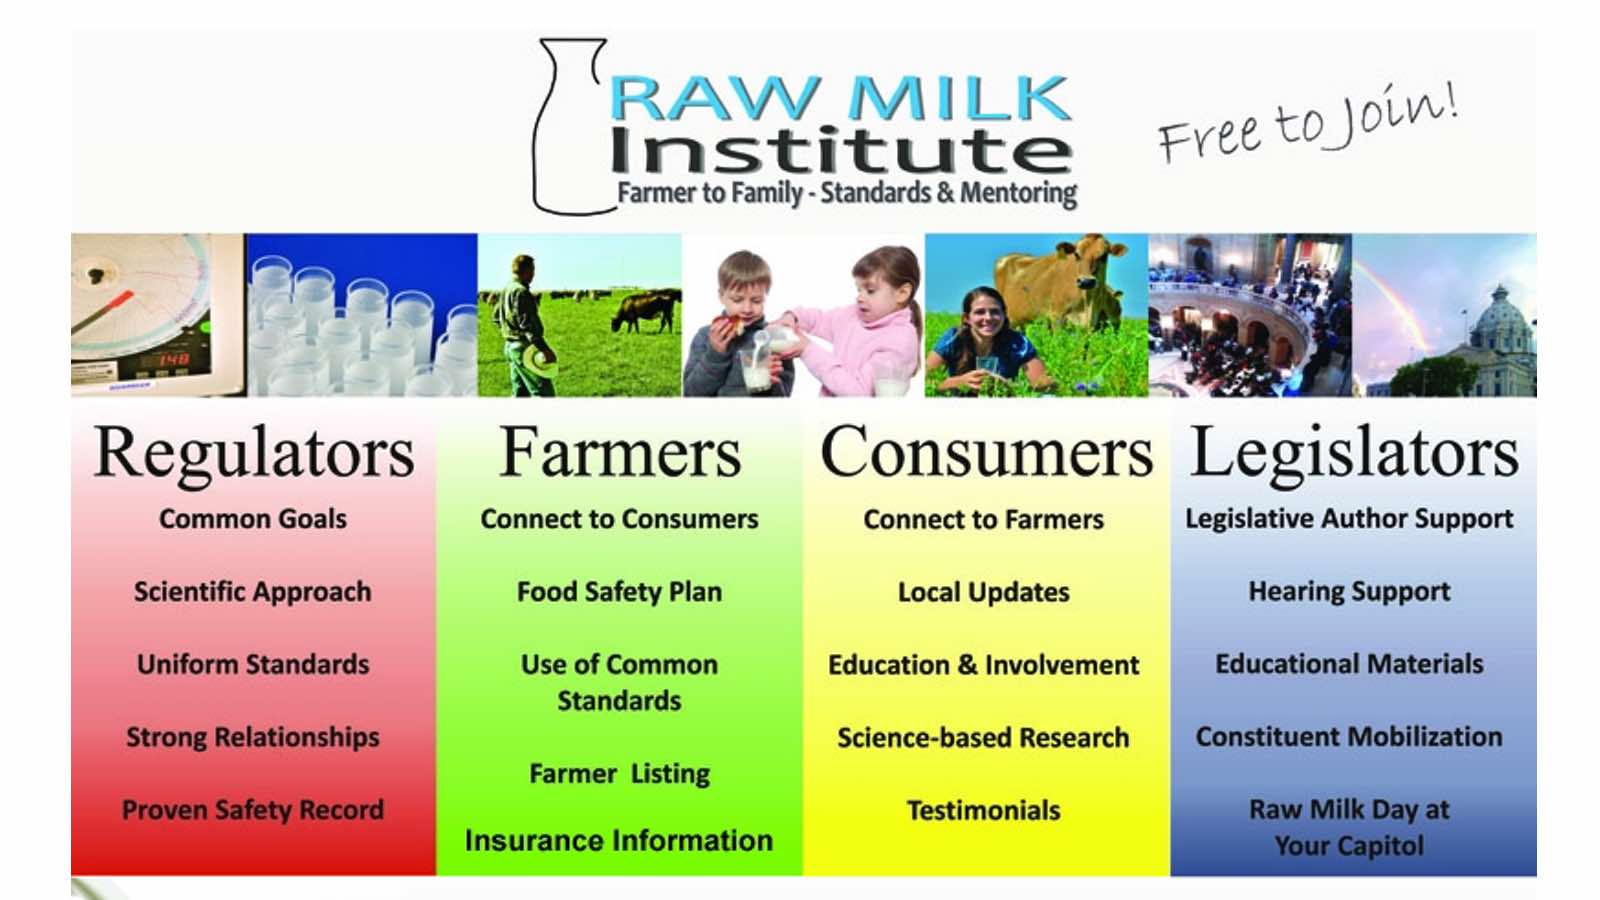 The Raw Milk Institute activities